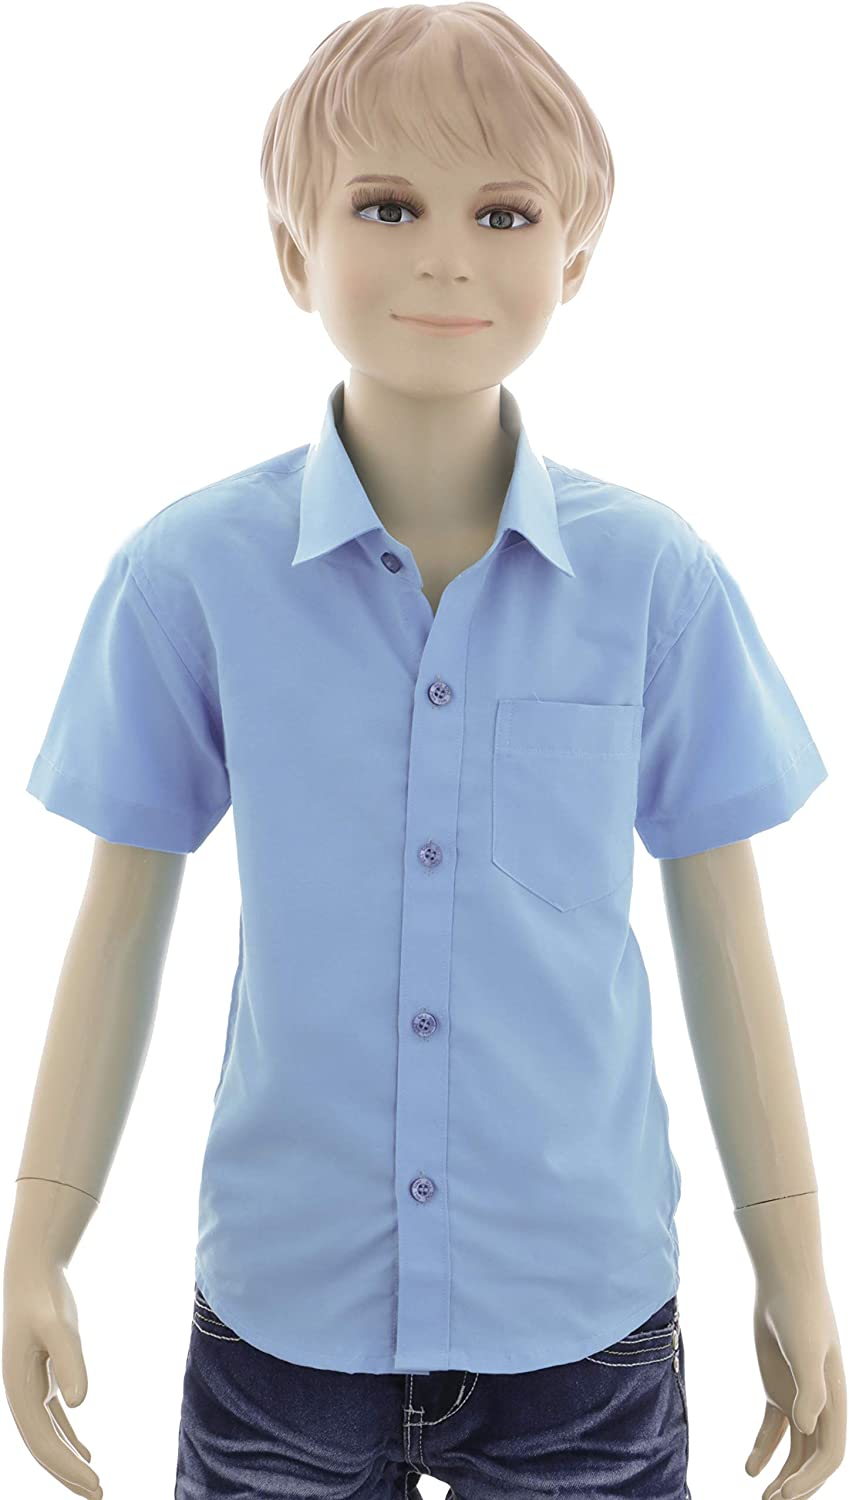 Gillsonz A70vDa Childrens Party Shirt Casual Shirt Easy to Iron Short Sleeve 7 Colours Size 86-158